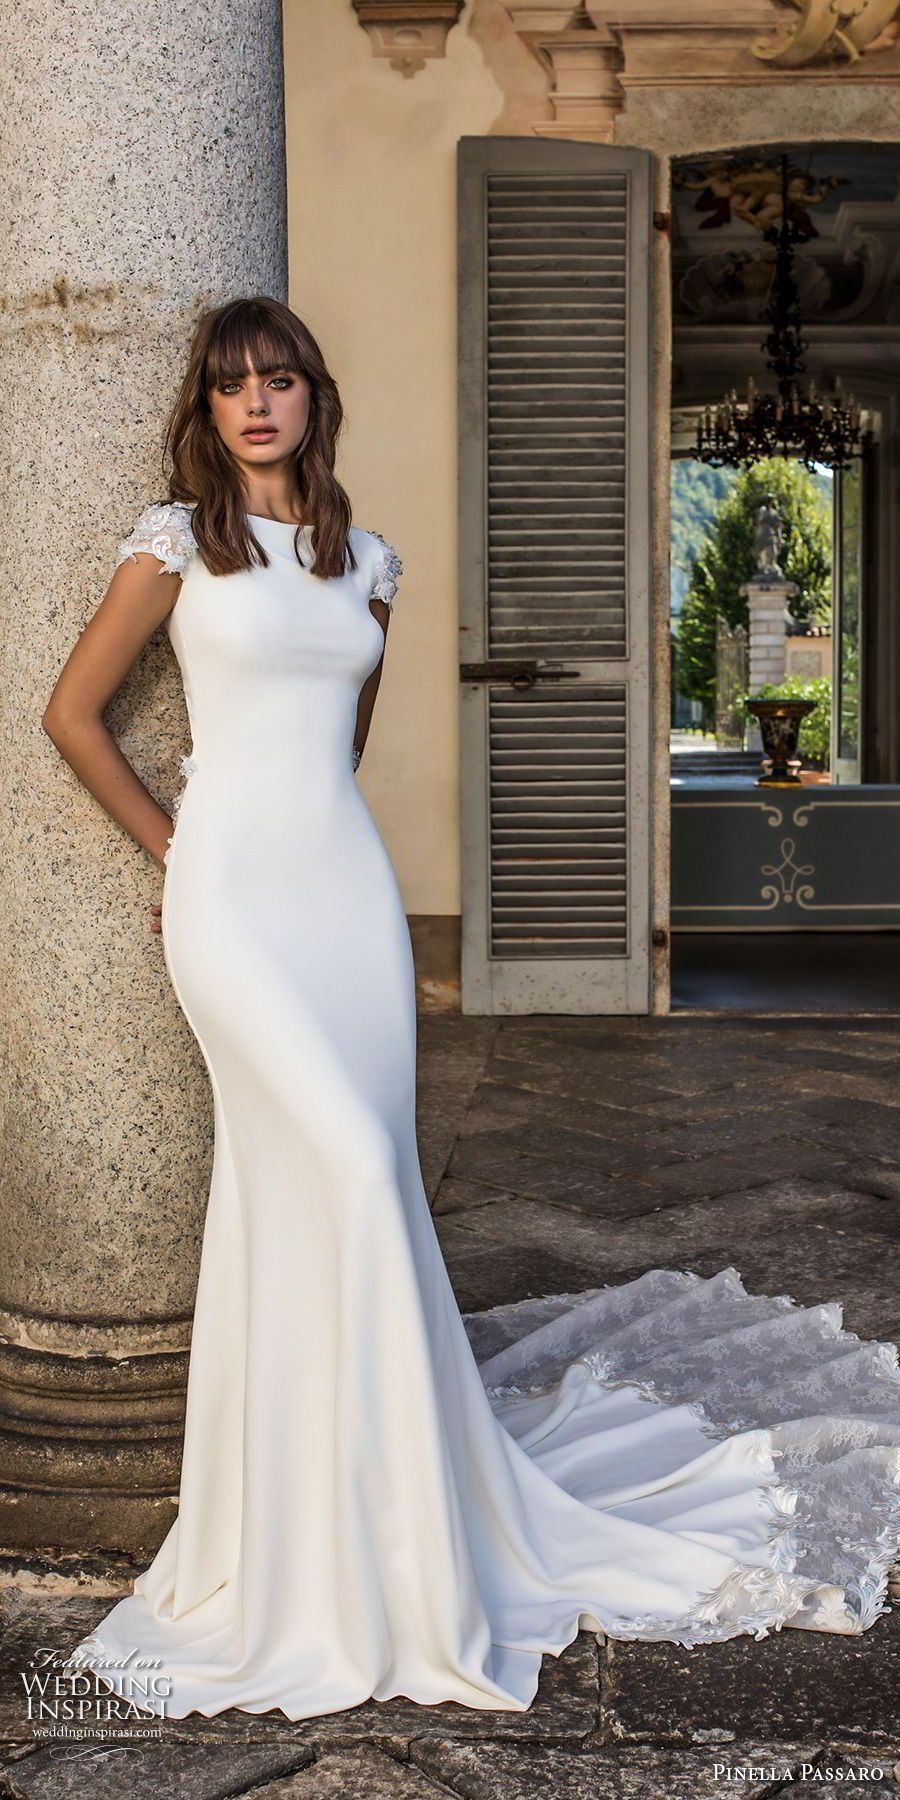 8be927ca4b pinella passaro 2018 bridal cap sleeves bateau neck simple clean elegant  classy fit and flare sheath wedding dress keyhole back chapel train (12) mv  ...